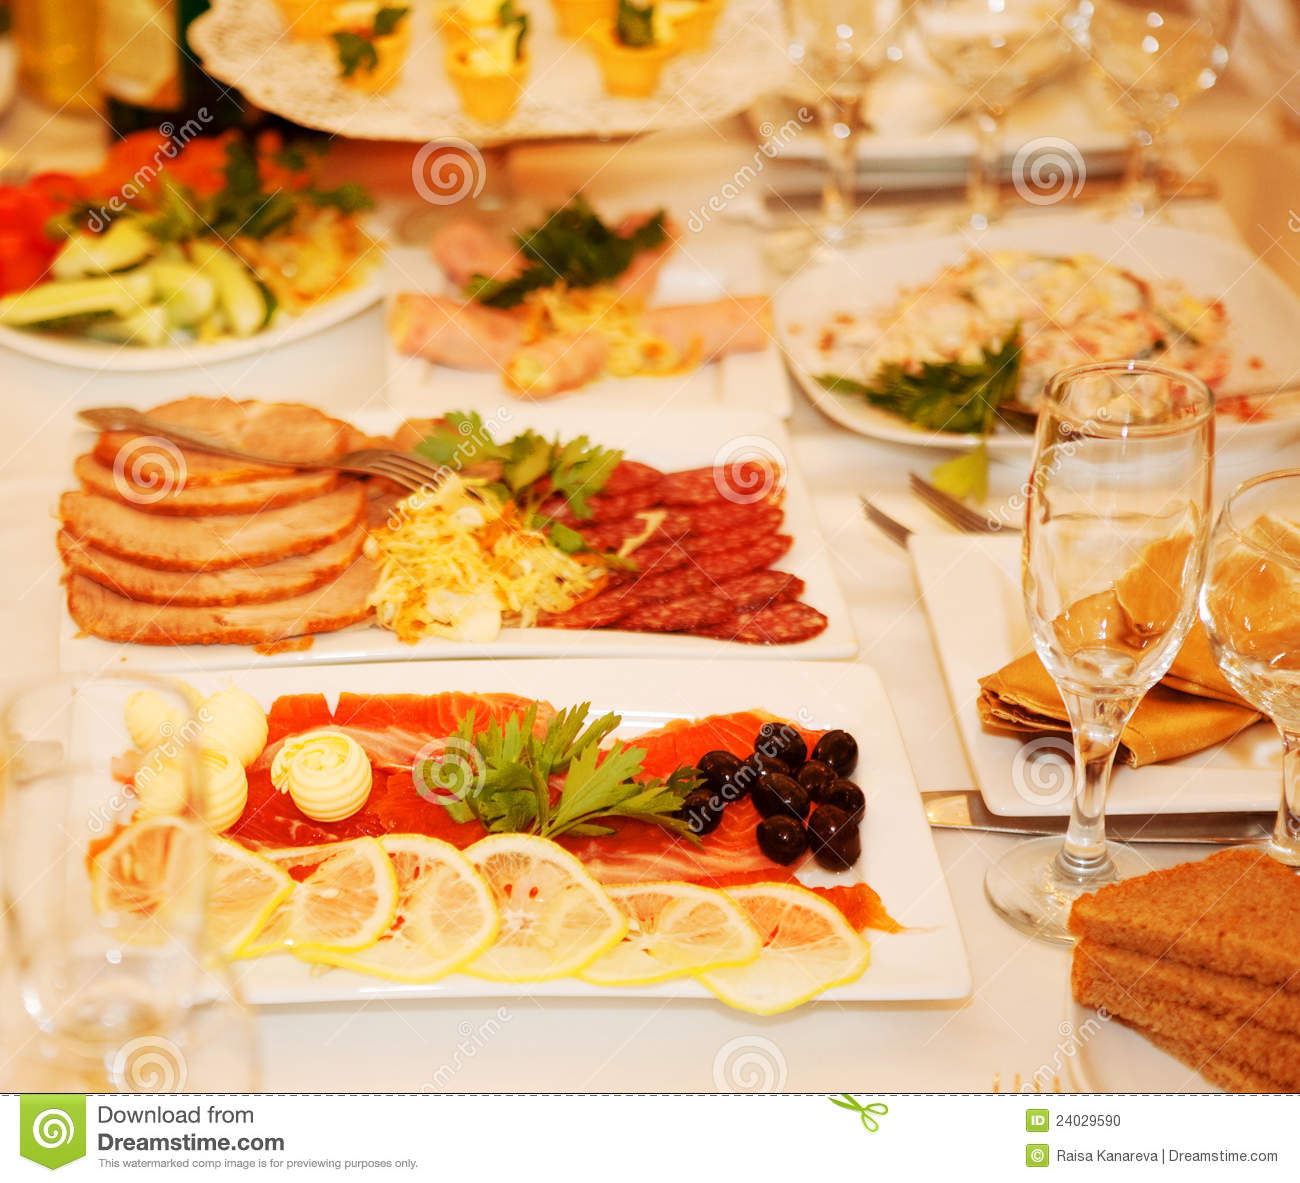 Banquet Table With Food Stock Photo   Image  24029590